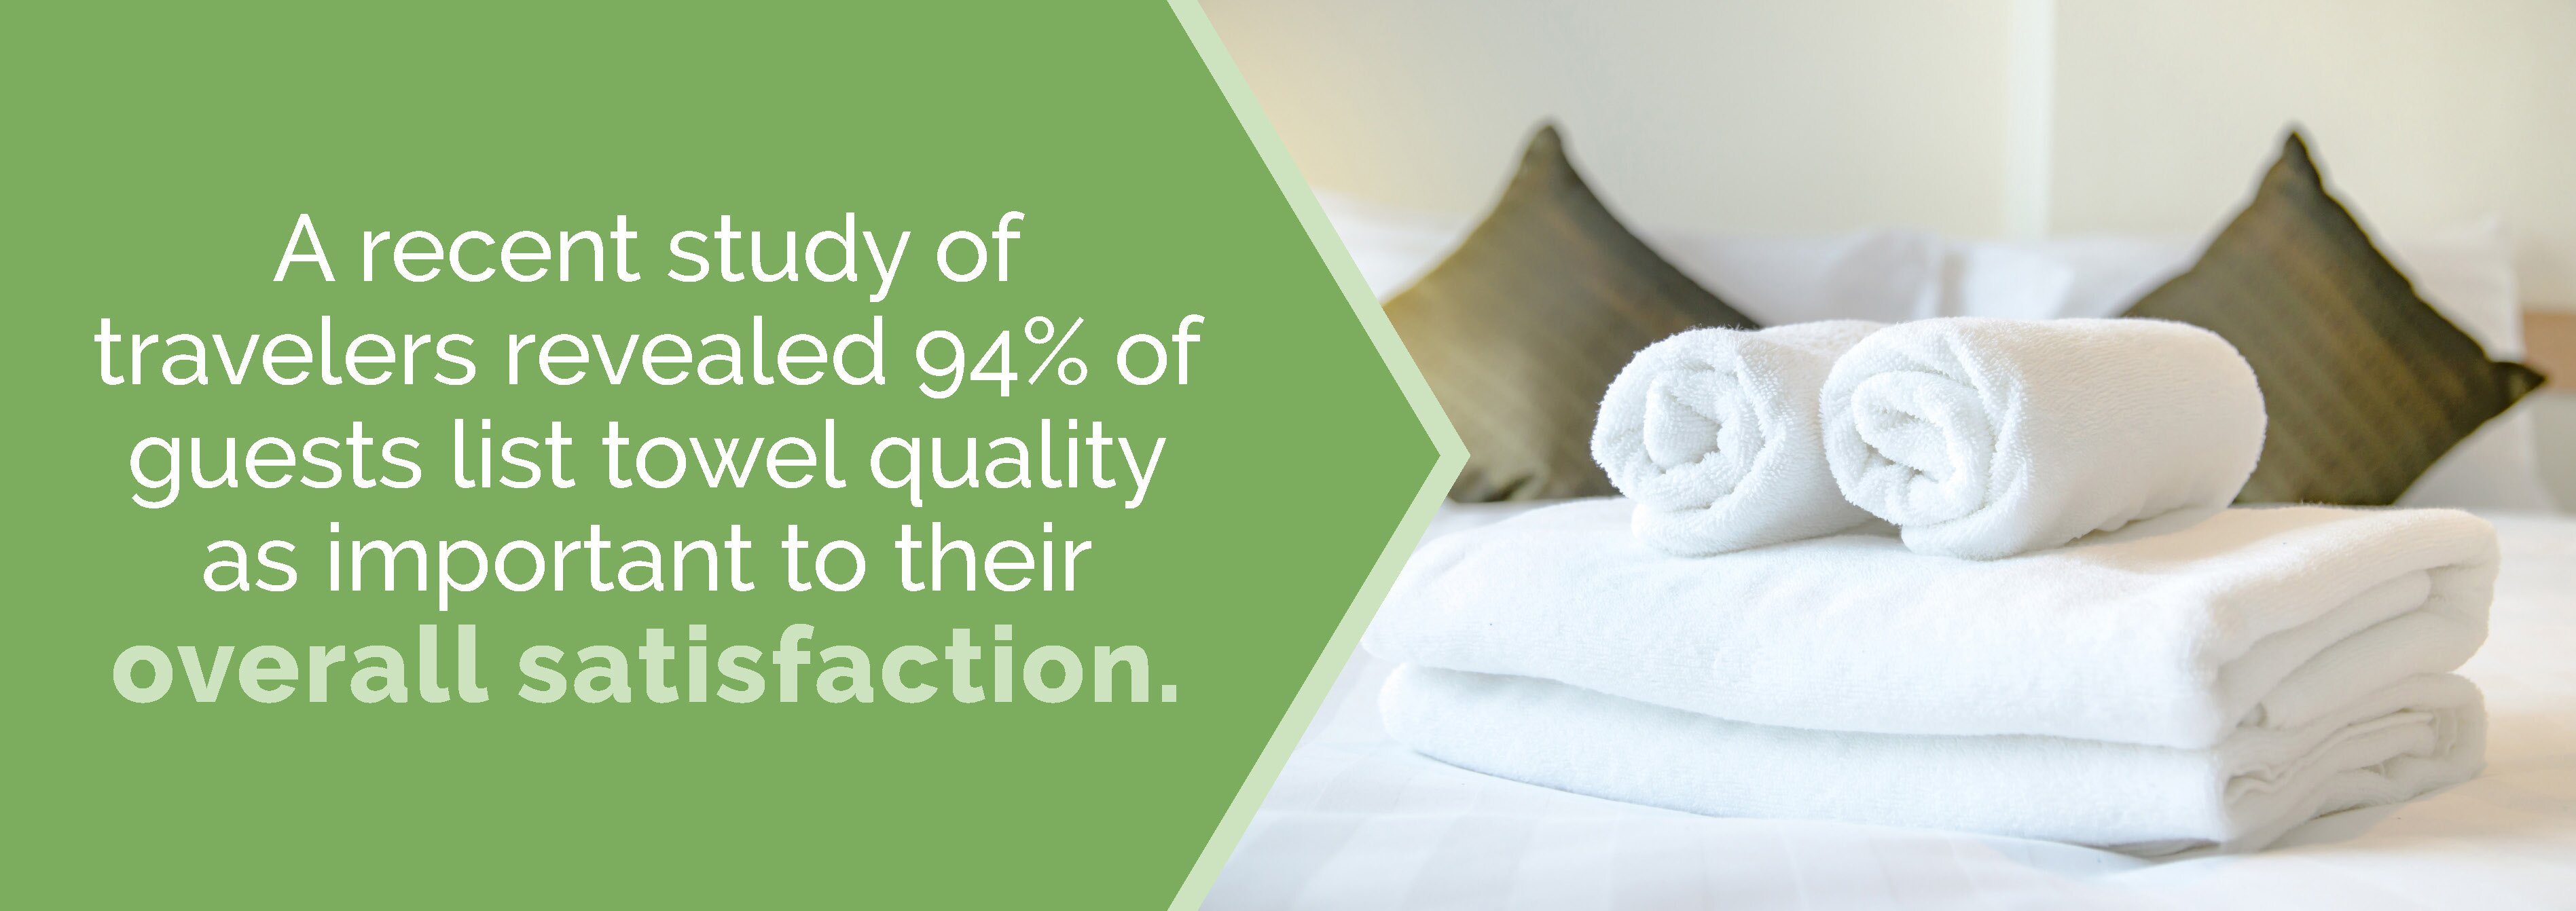 Guests list towel quality as important to their overall satisfaction.